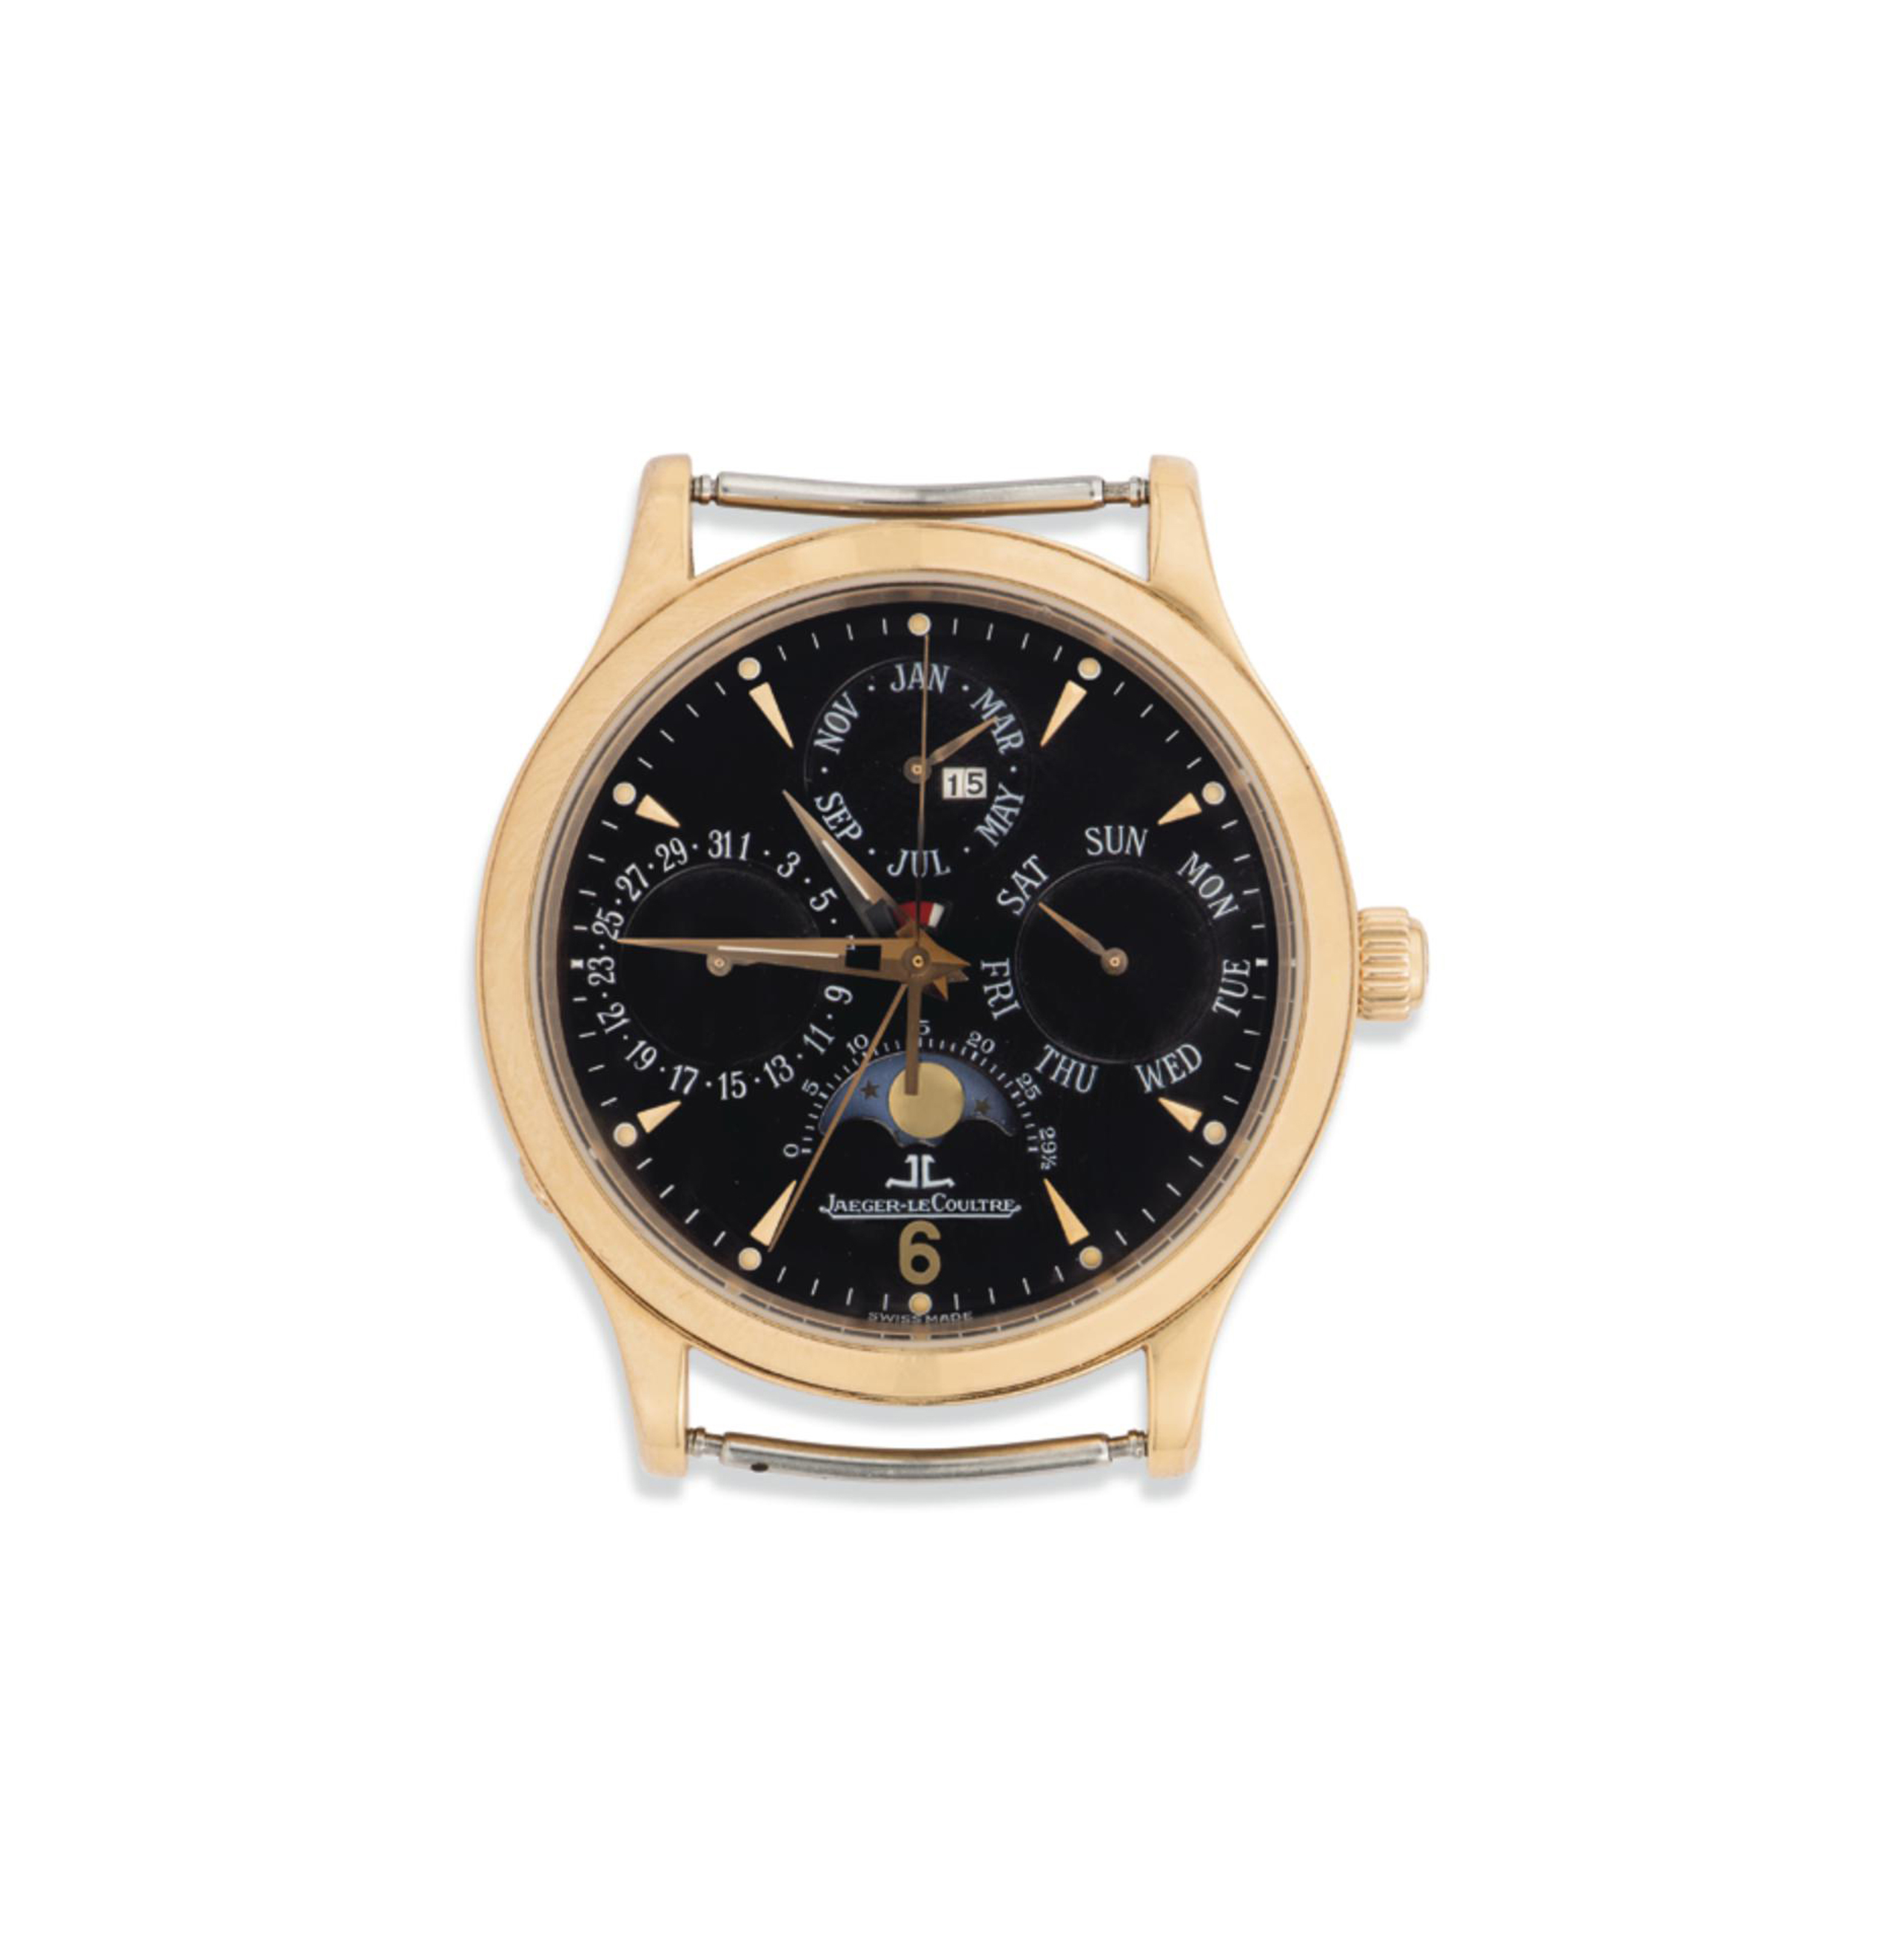 AN 18CT PINK GOLD AUTOMATIC PERPETUAL CALENDAR 'MASTER CONTR...